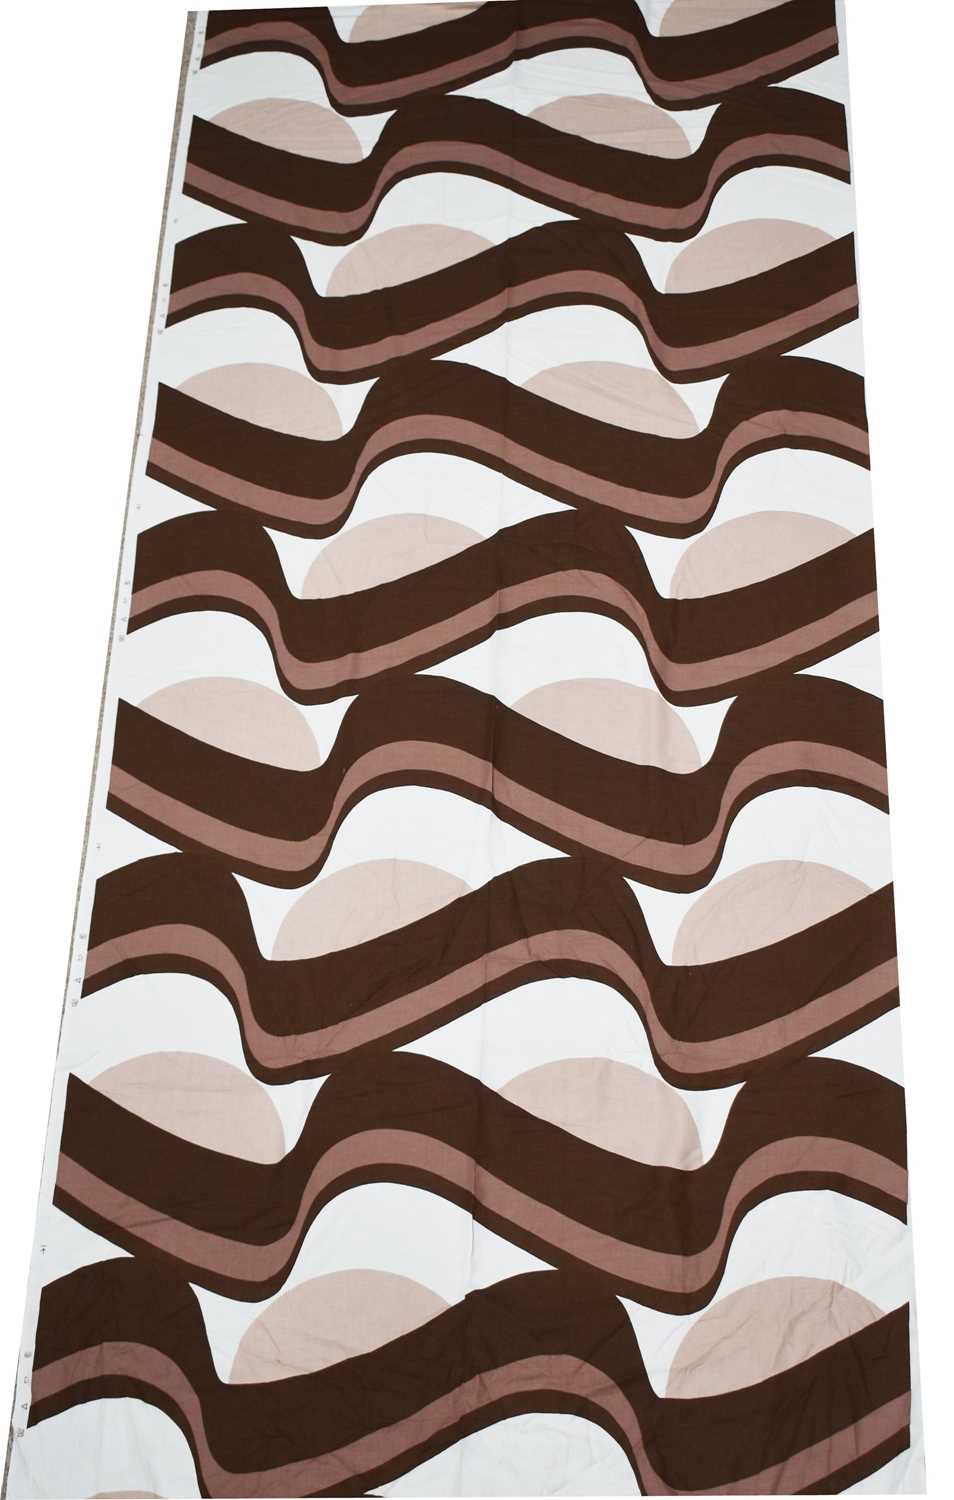 Vintage Fabric: a roll of brown & white swirl printed fabric